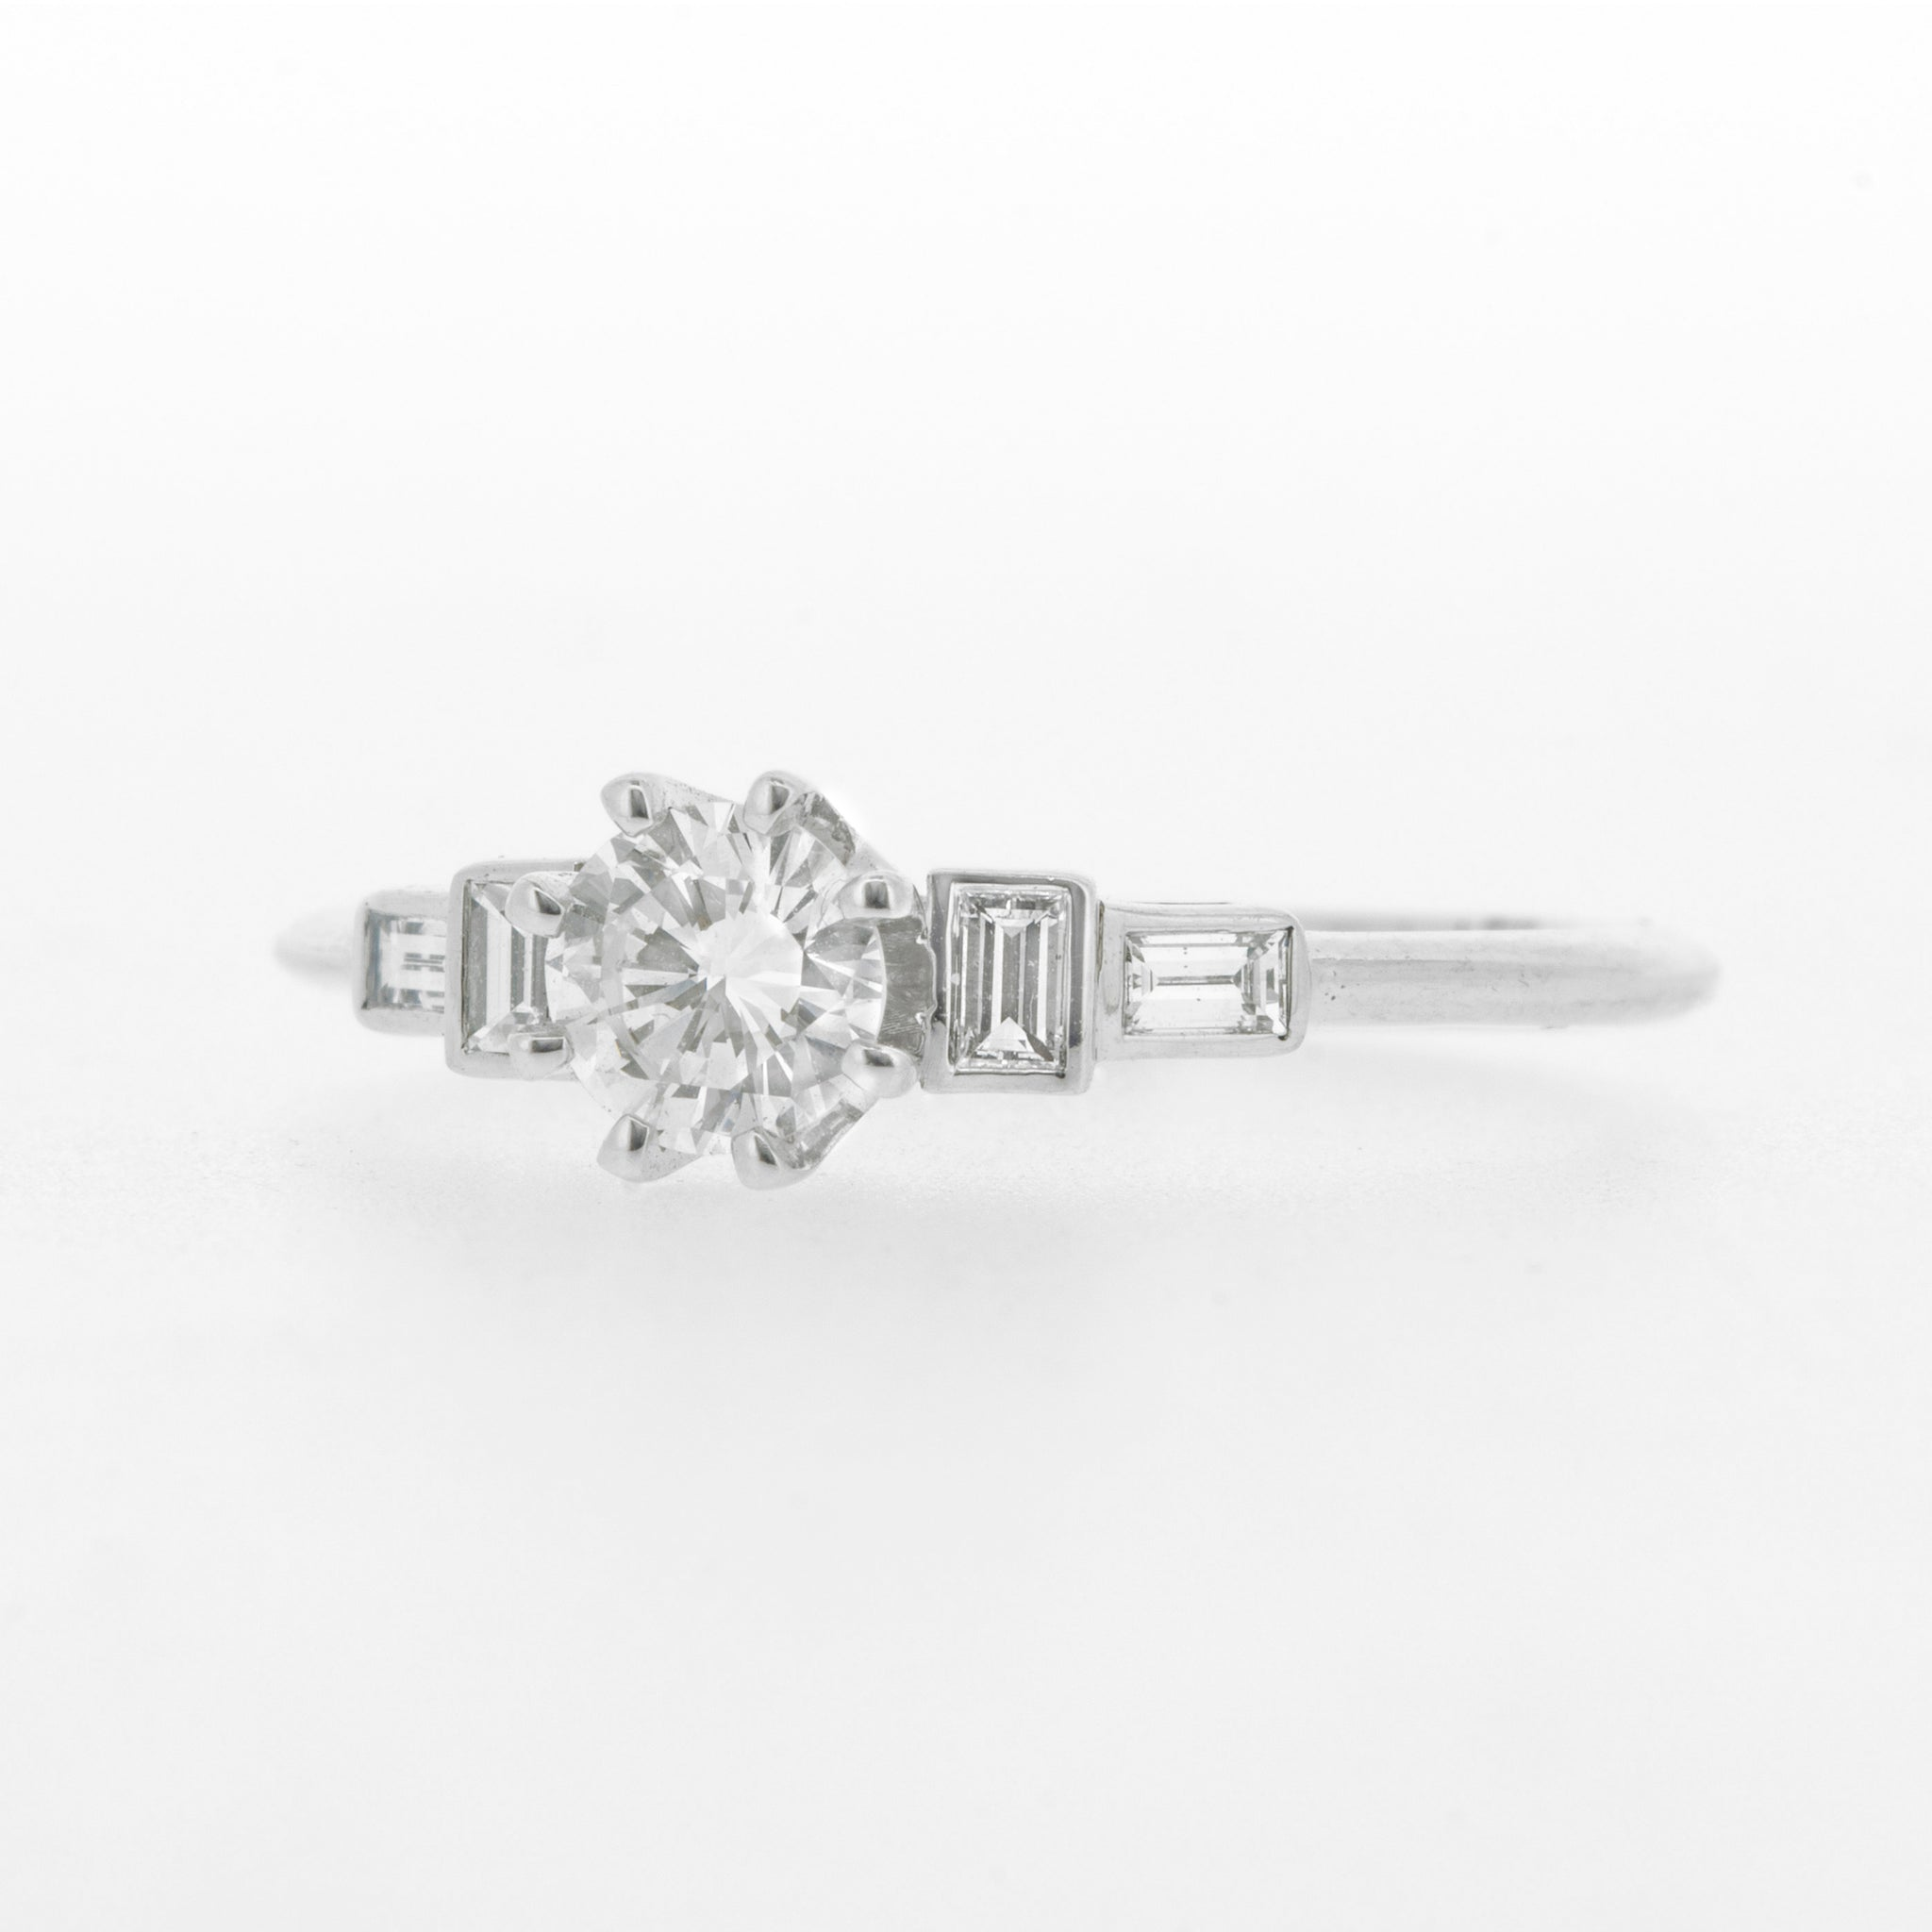 The Deco Solitaire